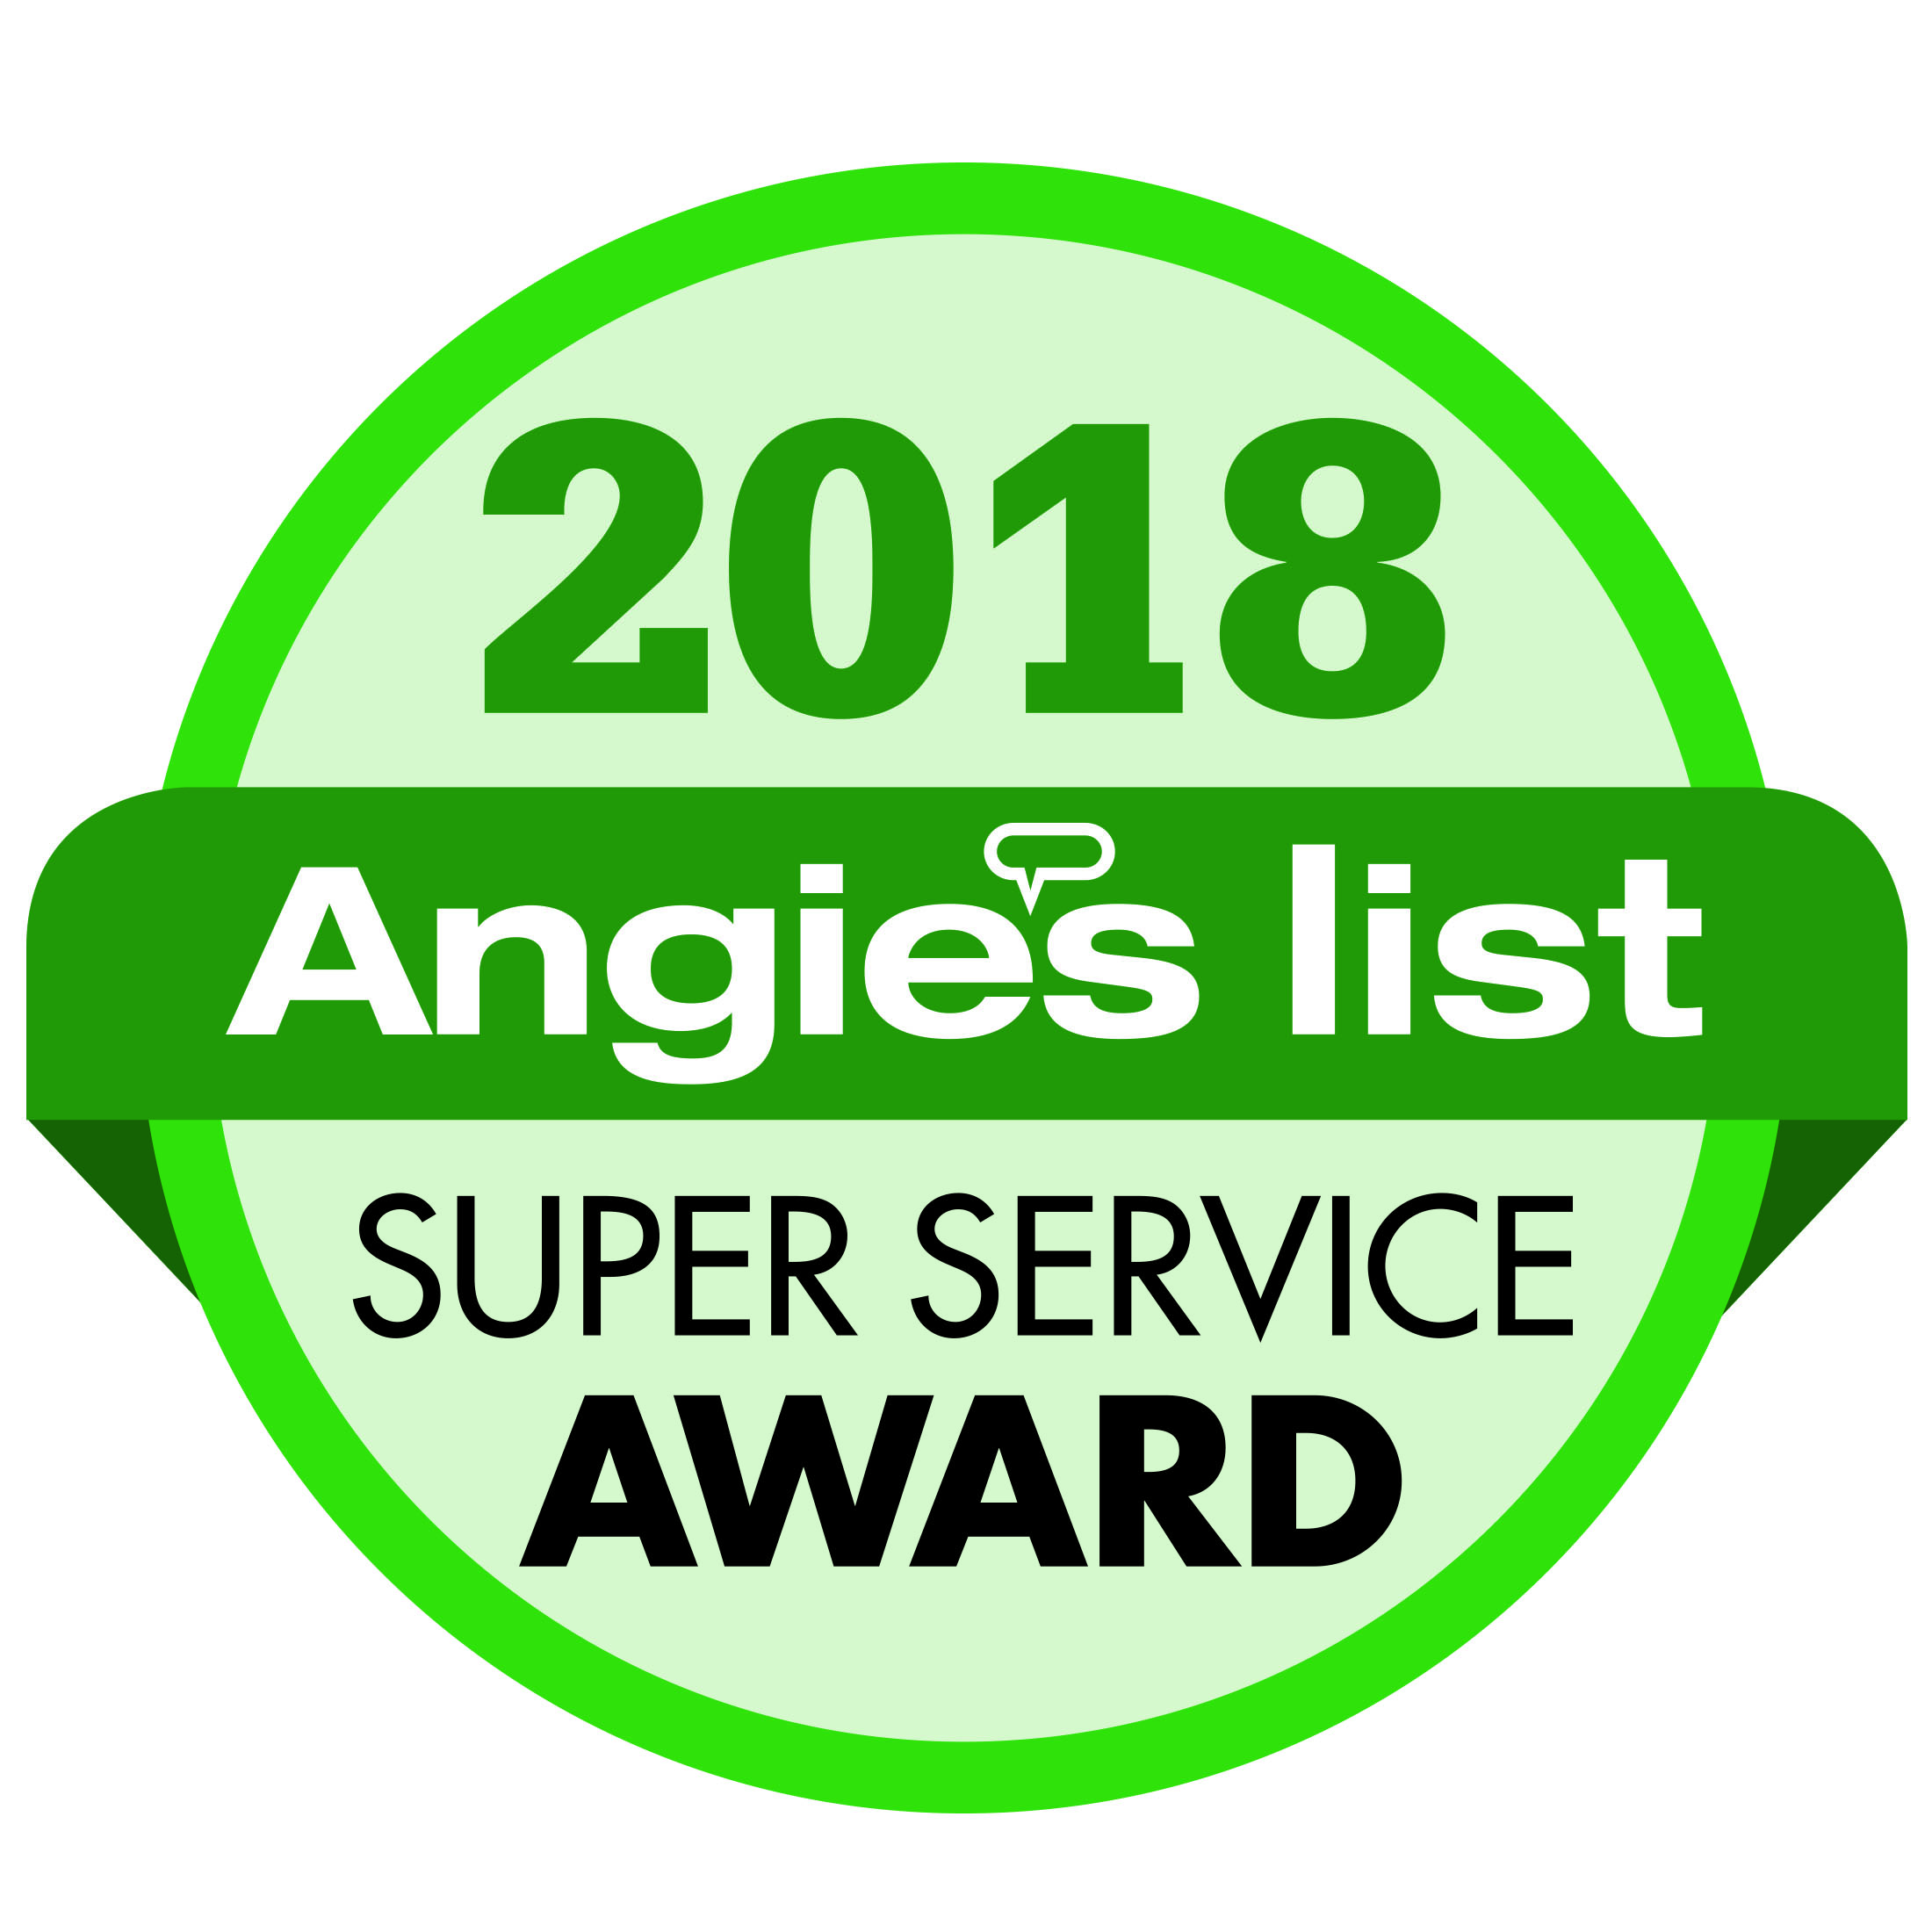 Angie's List Super Service Award Winners for 8 Years